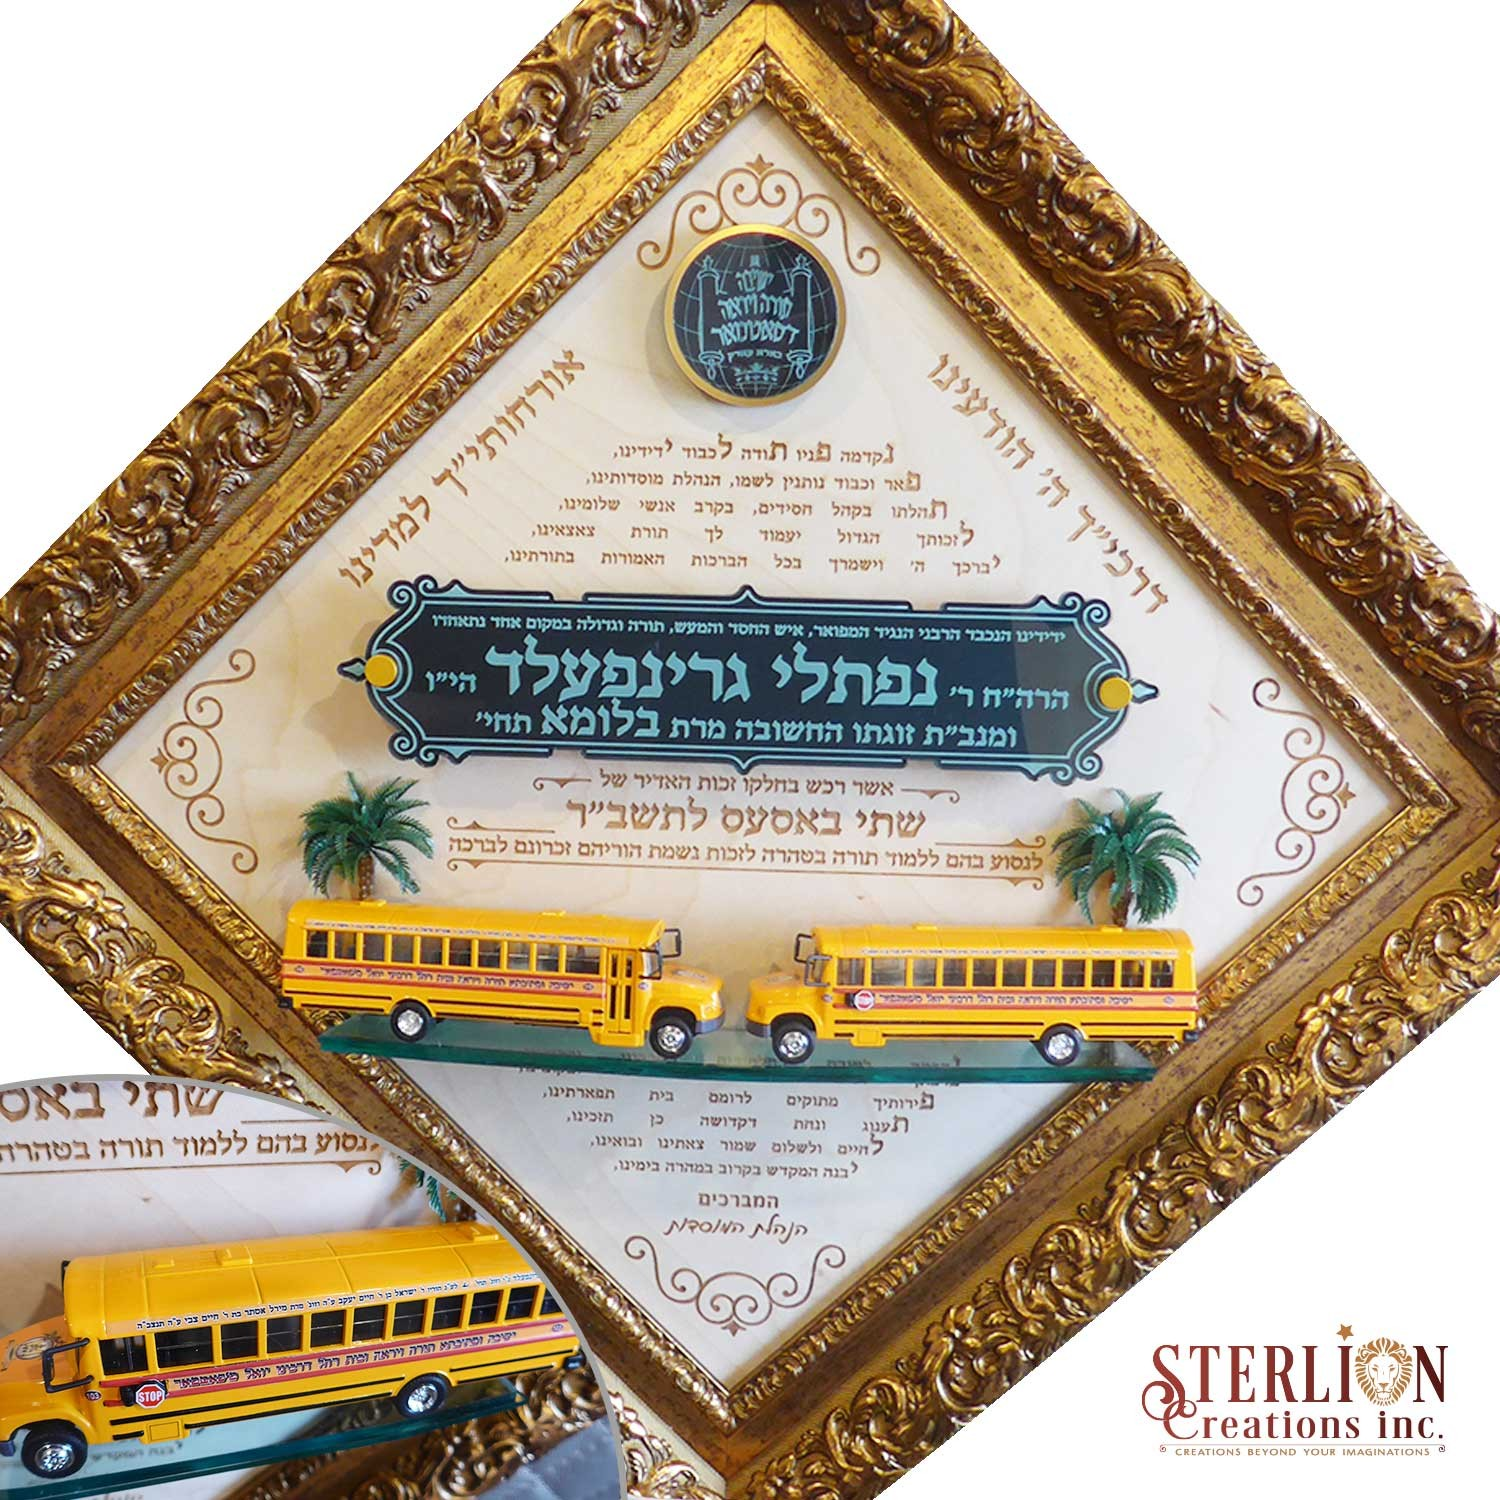 SterlionCreations Bus Donor Large Diamond Shaped Plaque